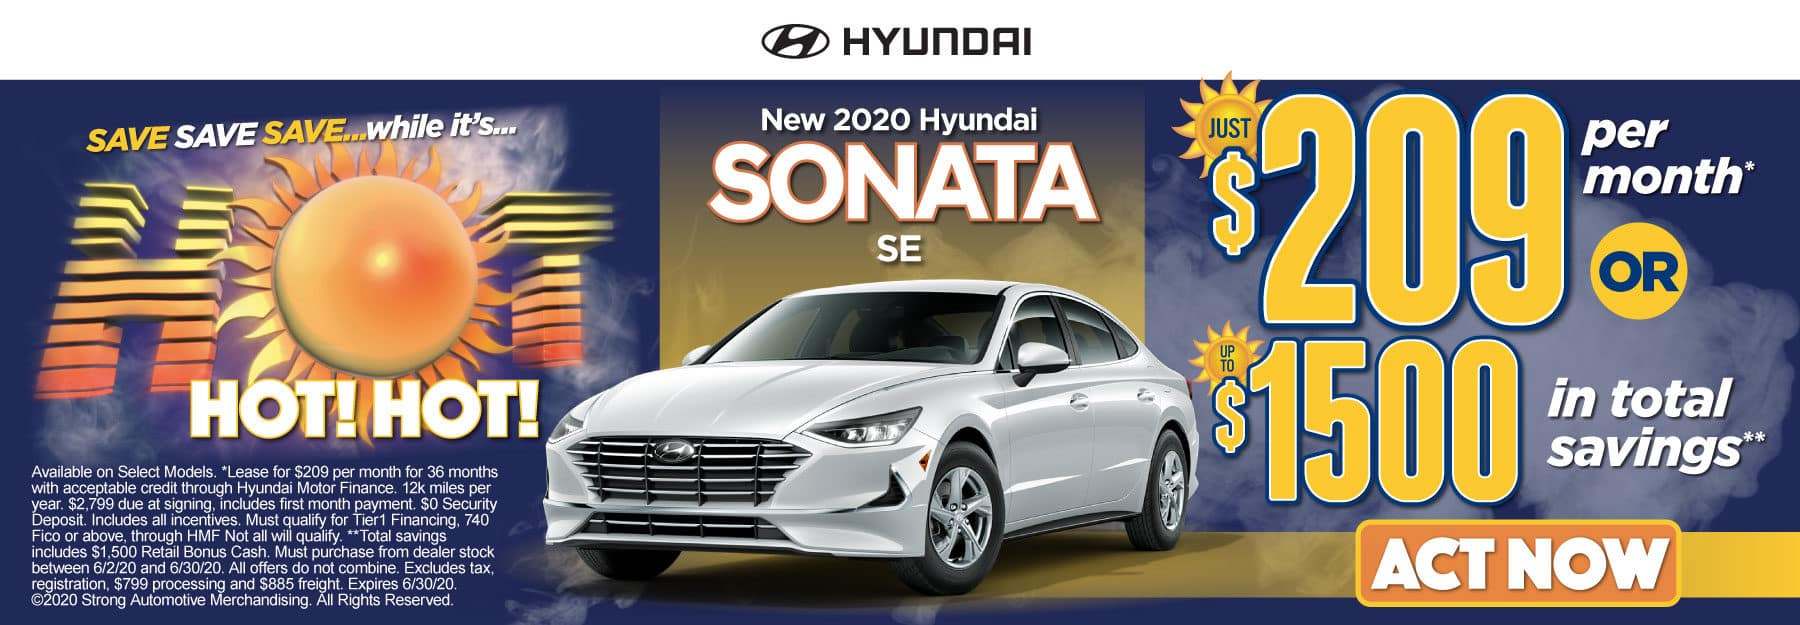 New 2020 Hyundai Sonata - Just $209 per month or up to $1500 in total savings - Click to View Inventory